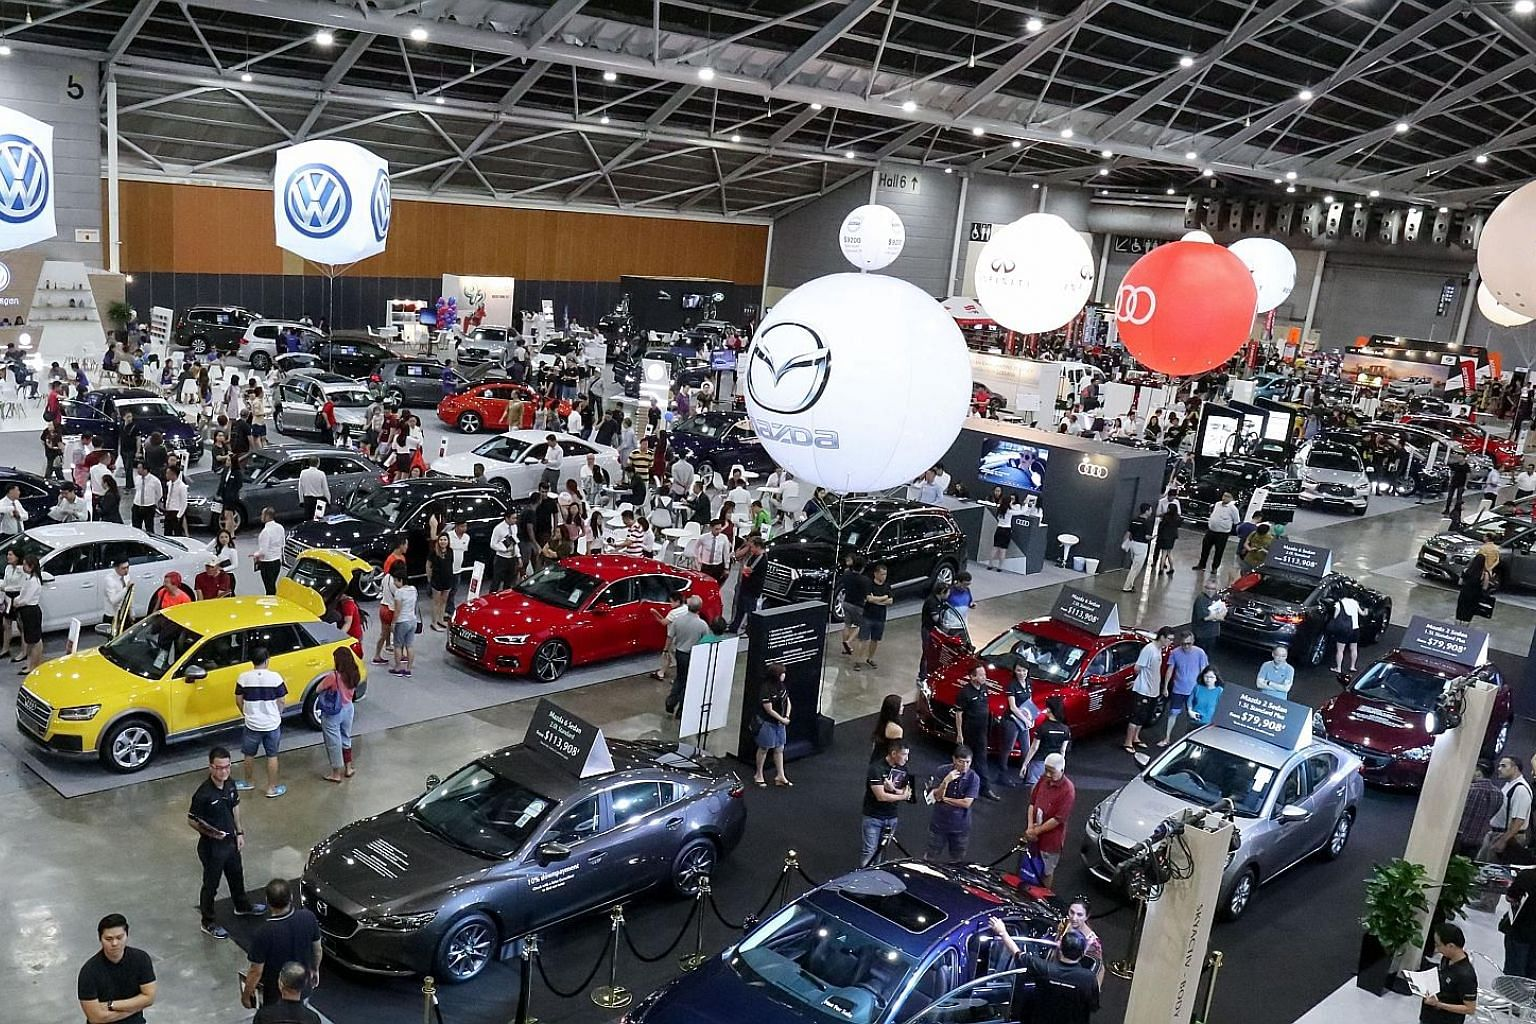 Vehicle enthusiasts of all stripes were out in force yesterday when The Cars@Expo opened at Singapore Expo Halls 4 and 5. The two-day event, now in its ninth year, has sweet deals and promotions offered by brands such as Audi, BMW, Honda, Jaguar, Sub